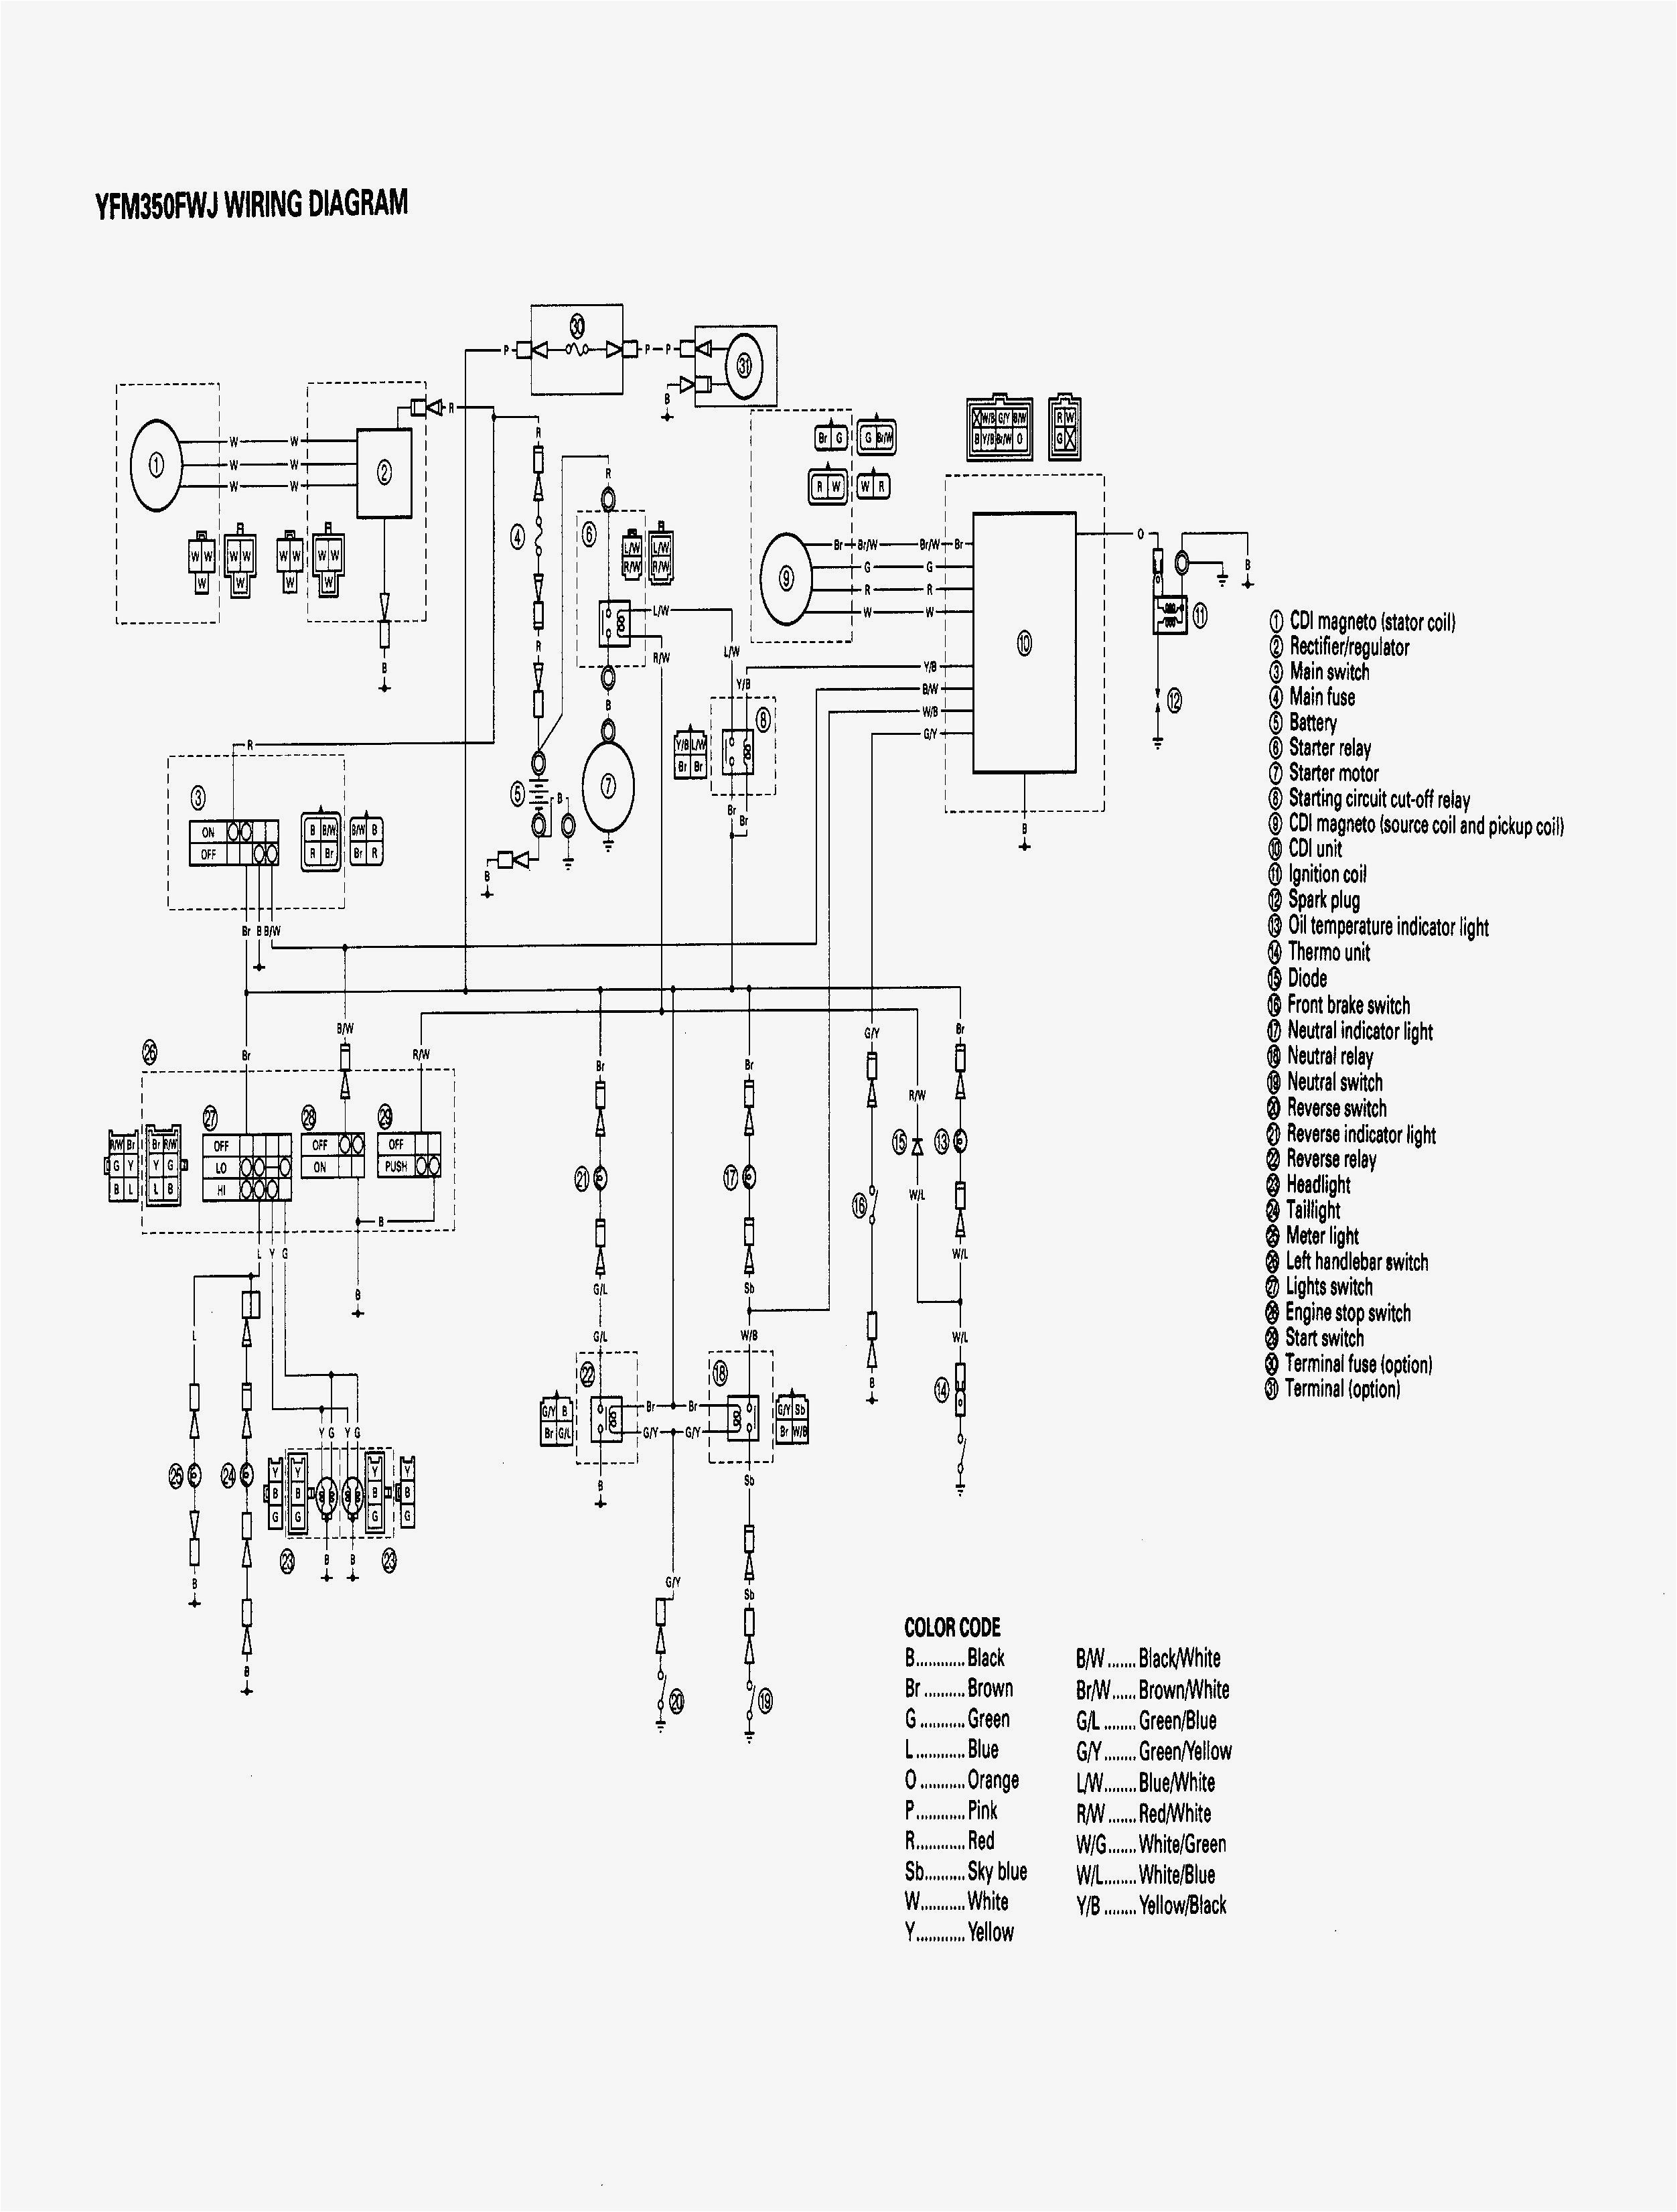 Yamaha Grizzly 350 Wiring Diagram Yamaha 2009 350 Grizzly Wiring Diagram Premium Wiring Diagram Blog